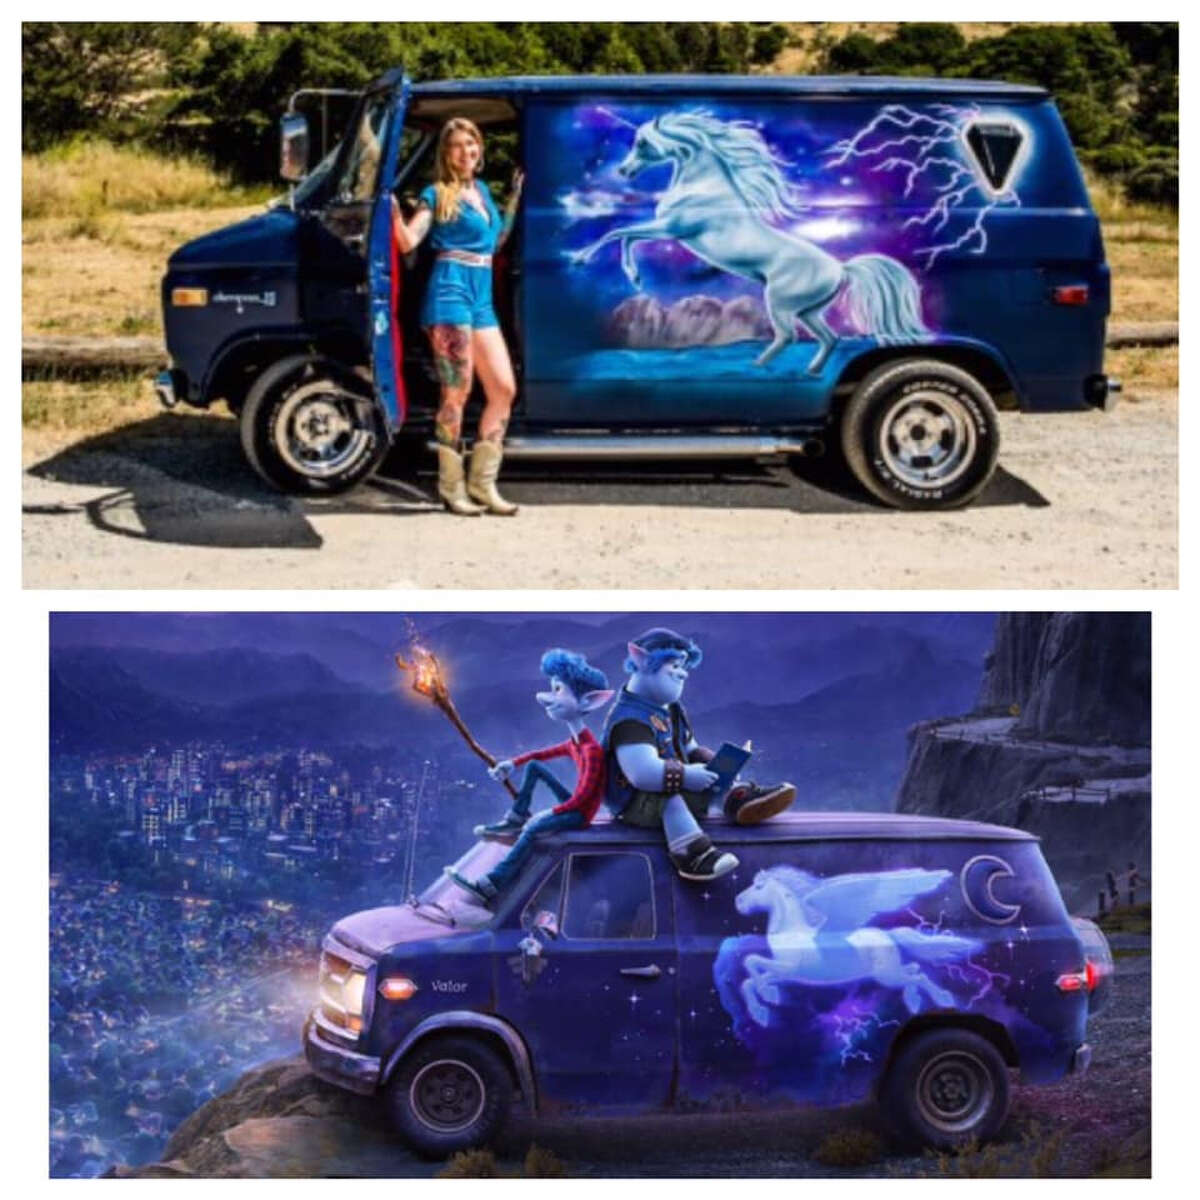 A San Francisco artist is suing Pixar for reportedly renting out her van without asking to use a depiction of it in the upcoming movie